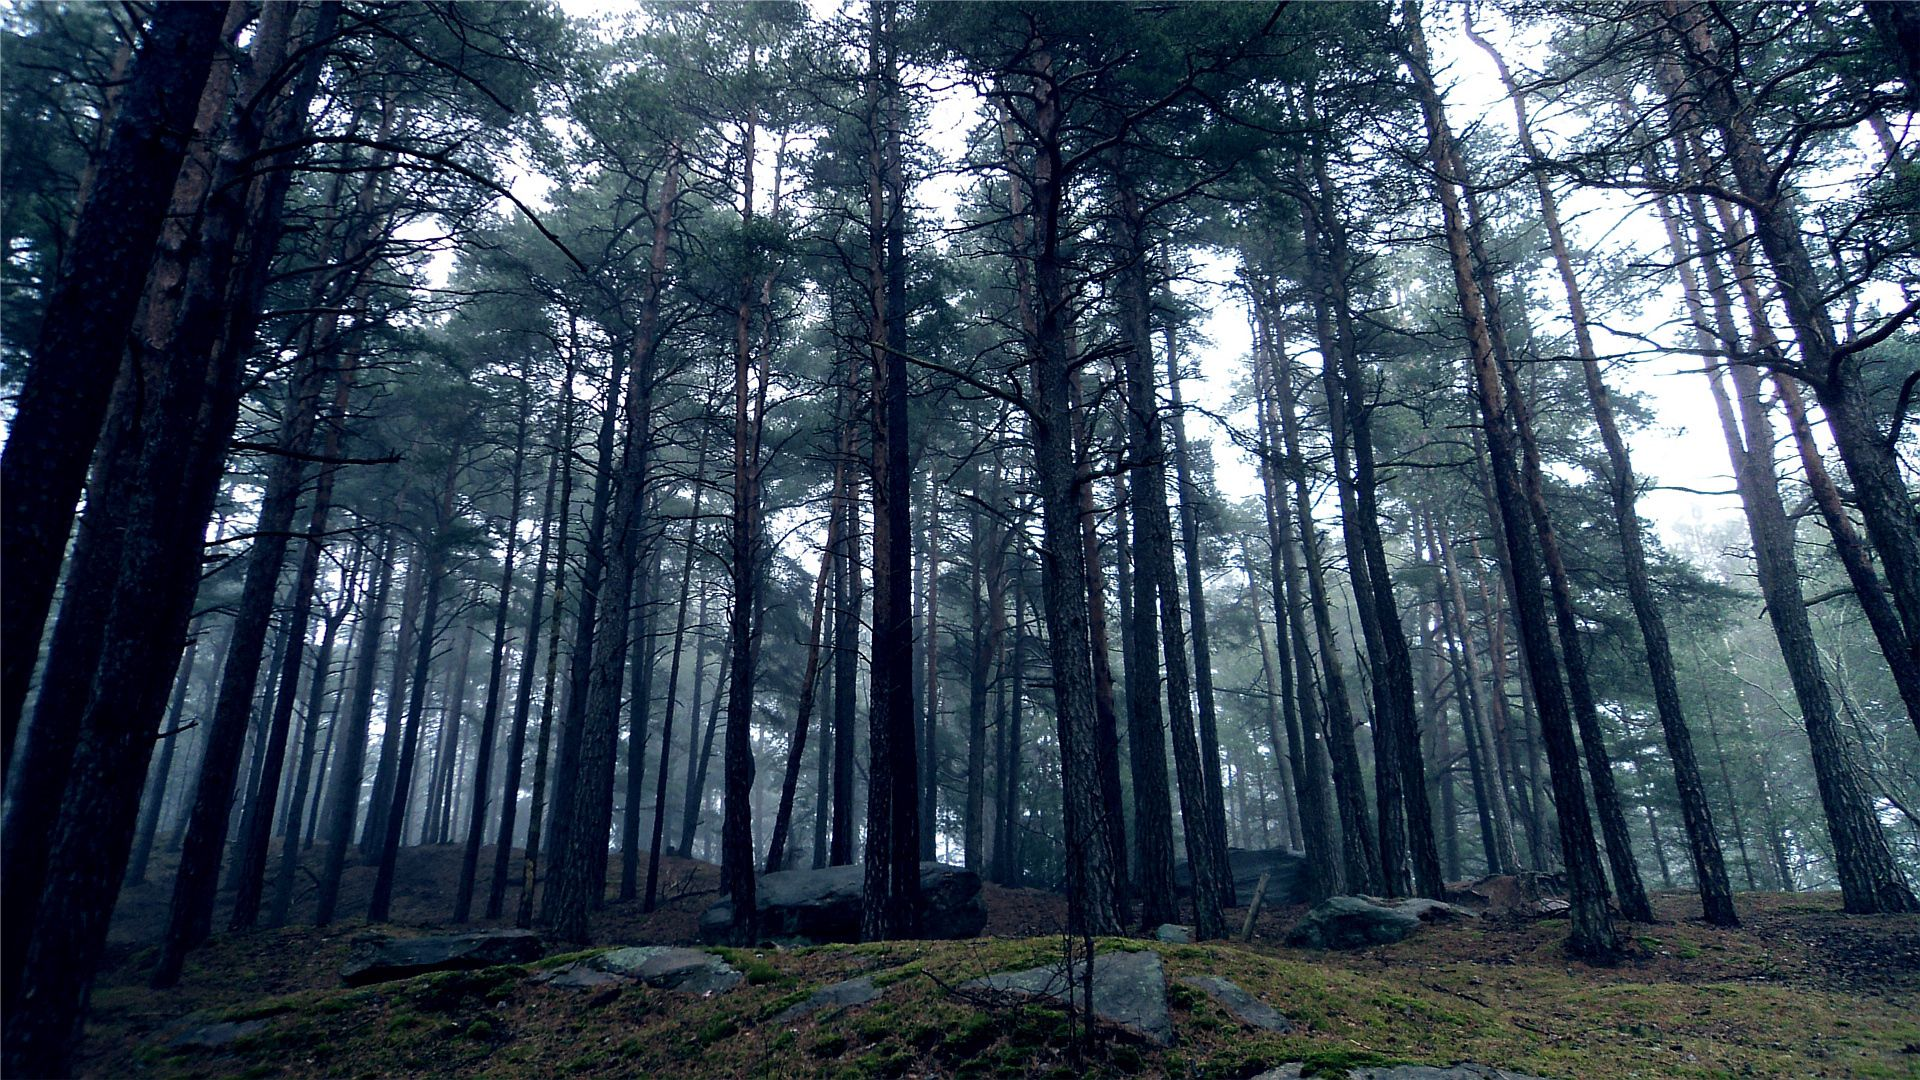 70922 download wallpaper Nature, Trees, Stones, Forest, Crown, Land, Earth, Gloomy, Crowns screensavers and pictures for free